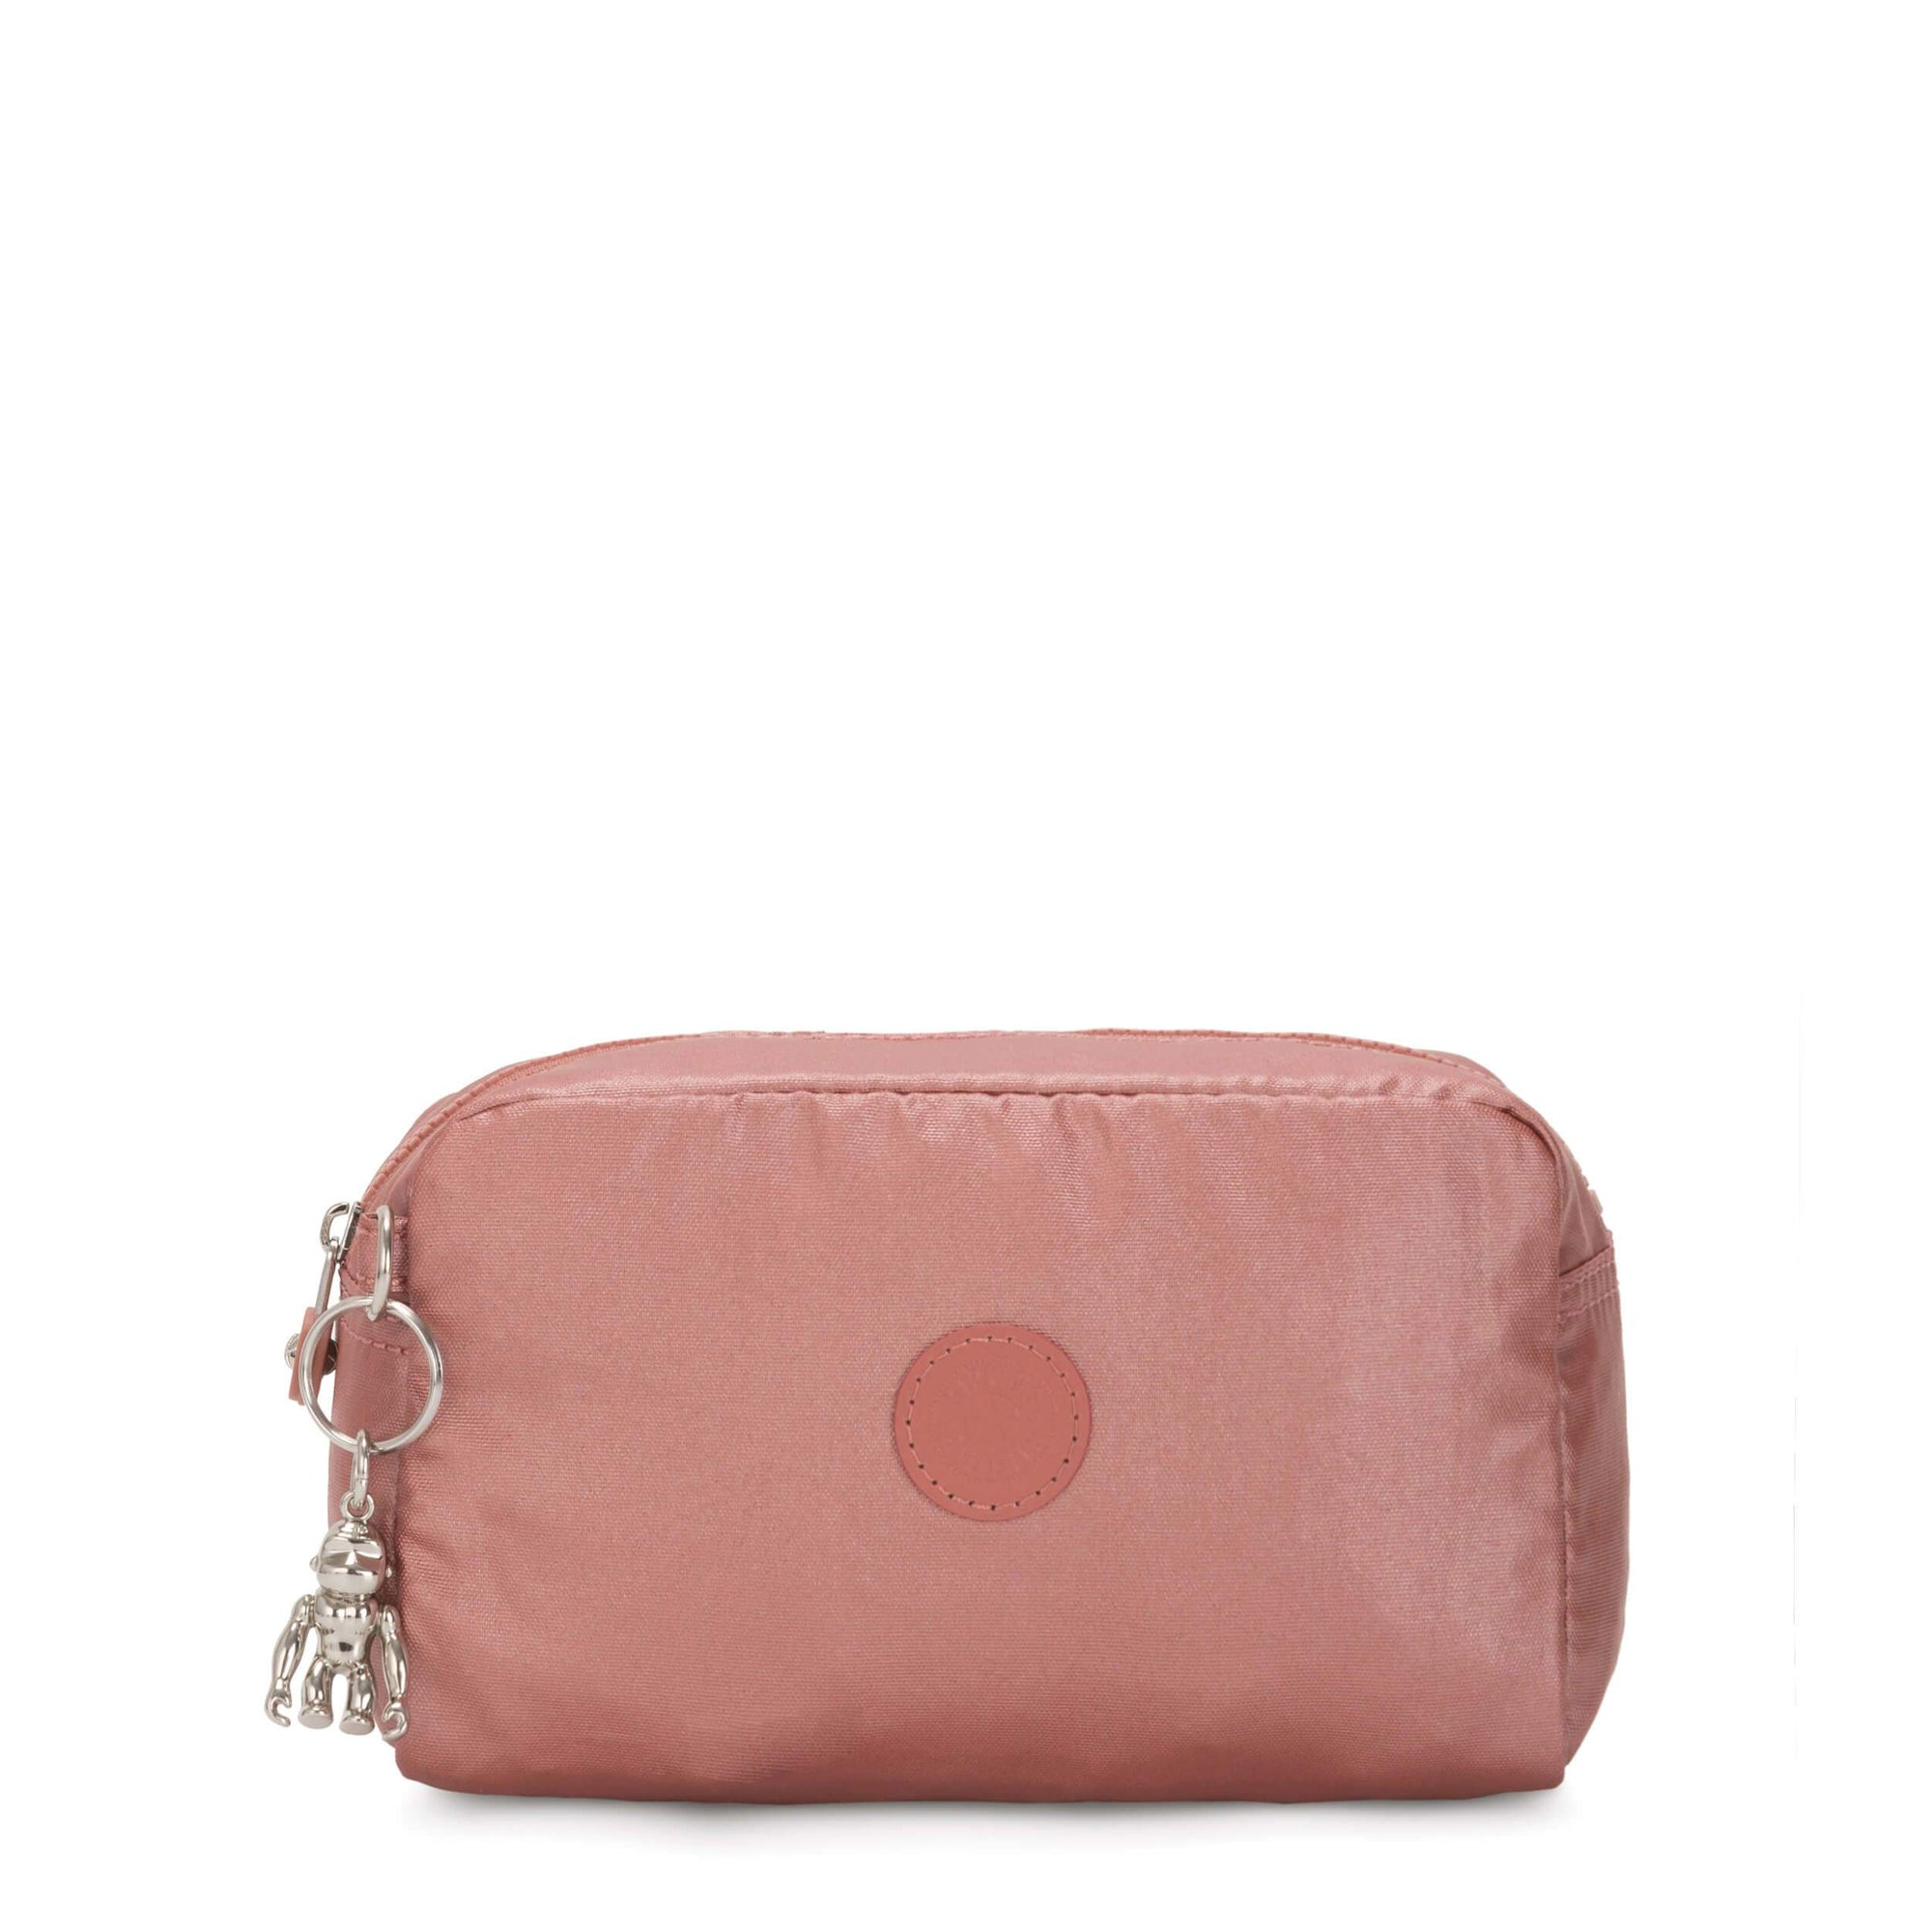 Cosmetiquera Kipling Gleam Metallic Rust KI719248P